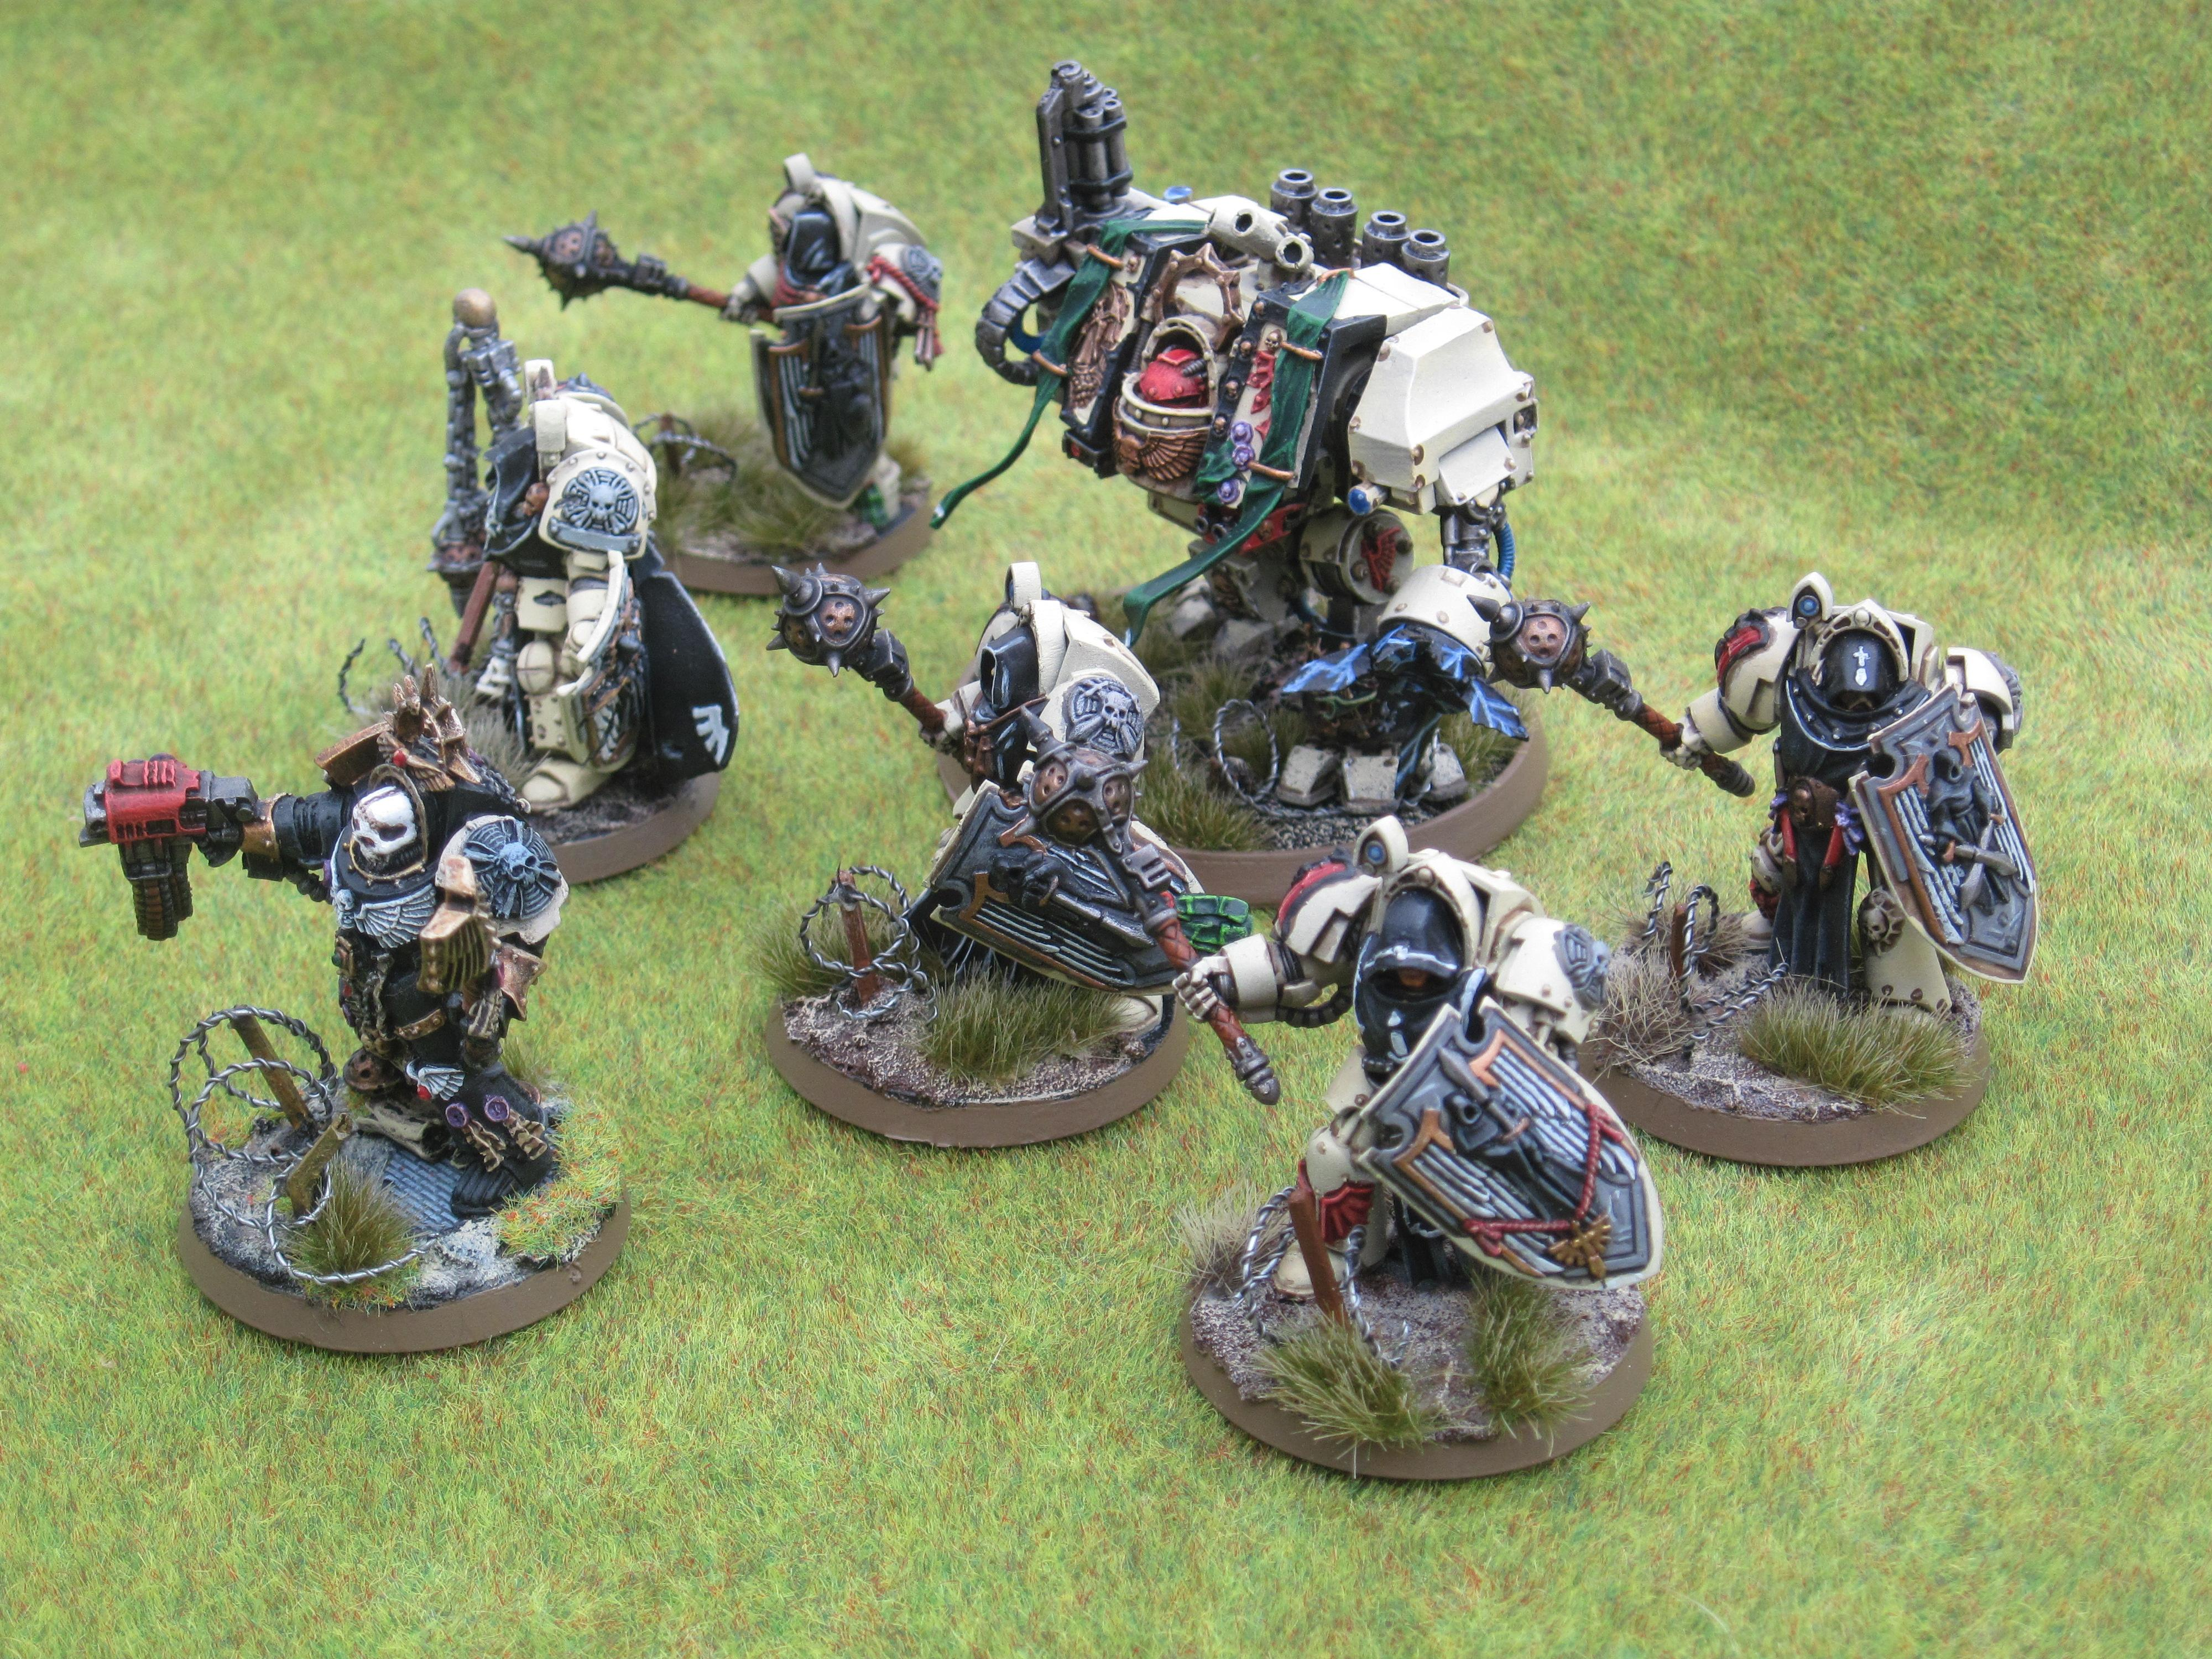 Airbrush, Barbed Wire Base, Chaplain, Dark Angels, Deathwing, Dreadnought, Forge World, Terminator Armor